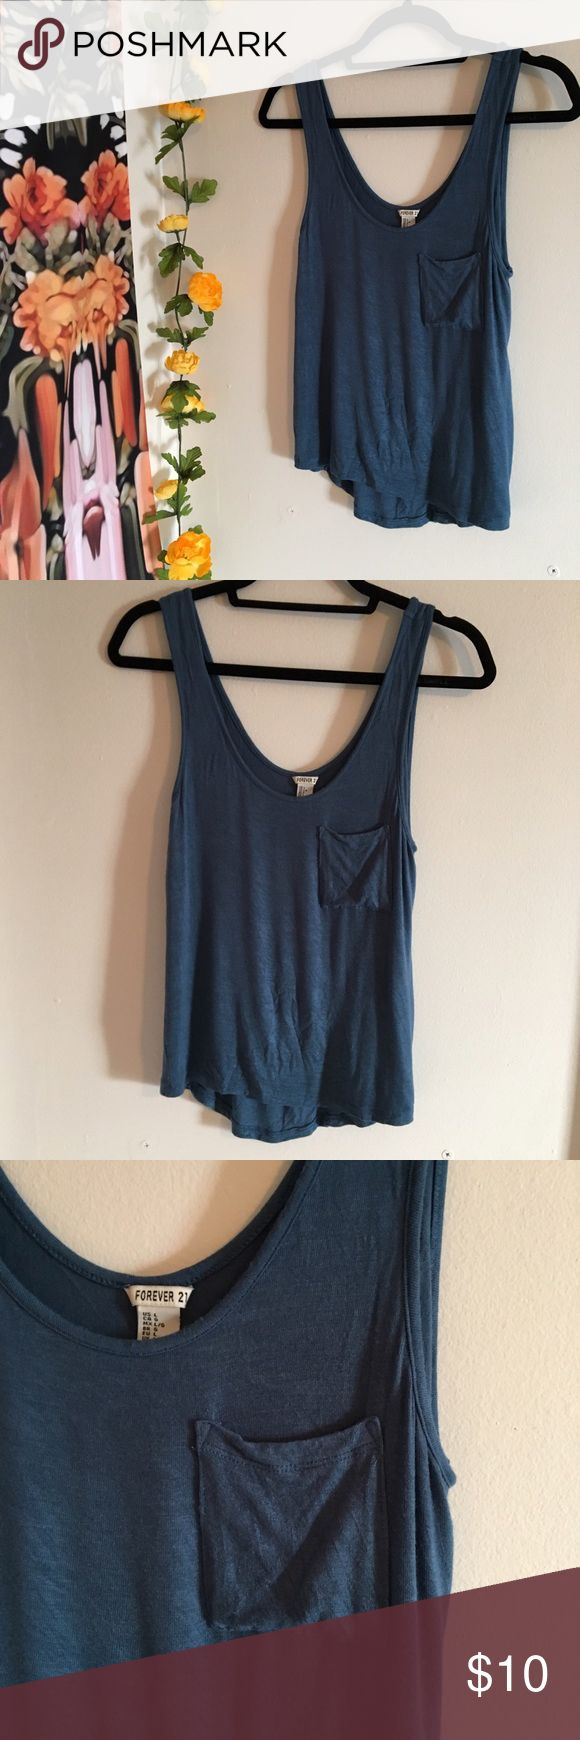 "💥Forever 21💥 Softest Blue Tank Quite literally the softest thing I have ever felt, this tank top is a great staple piece for any wardrobe!  Type: Tanktop Brand/Store: Forever 21 Size: L Defects: None  💀🖤LO'S SHOP🖤💀 💥I'm always accepting offers through the ""Offer"" button 💥15% off on 3+ items bundle 💥All items are sold as-is, and any issues will be called out above 💥Please feel free to ask any questions you may have in the comments  🖤HAPPY POSHING🖤 Forever 21 Tops Tank Tops"